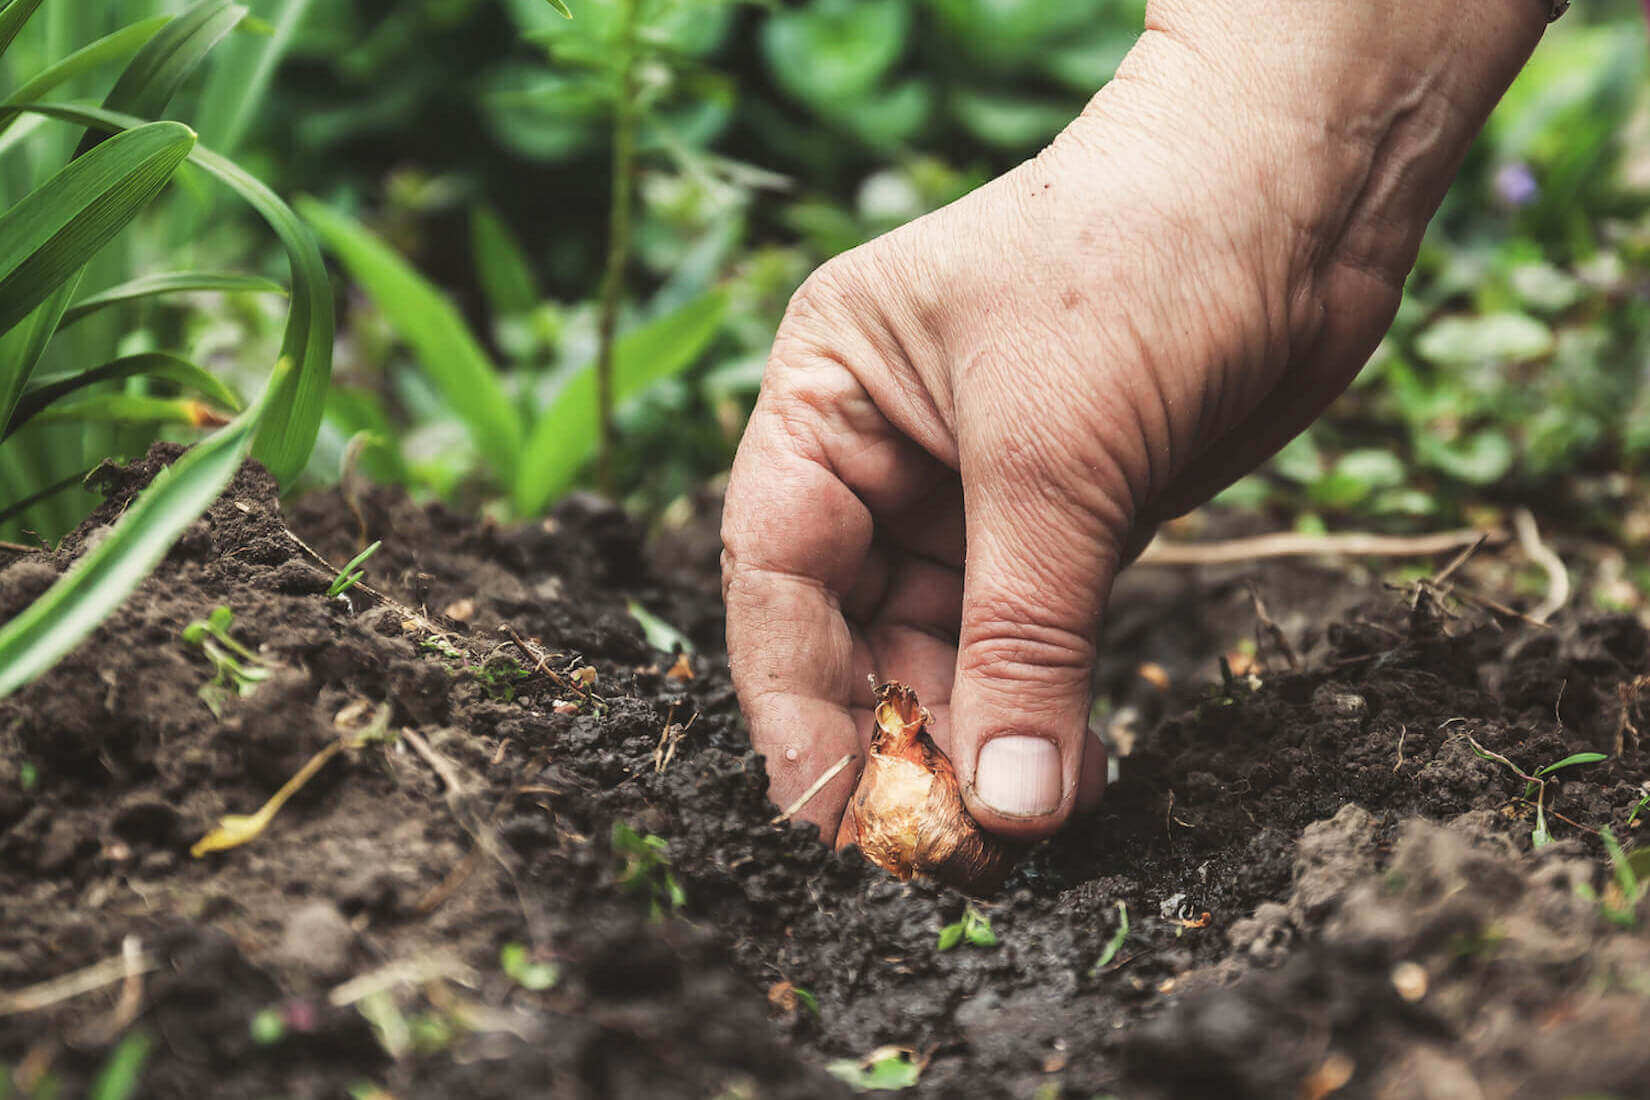 Planting Bulbs by hand